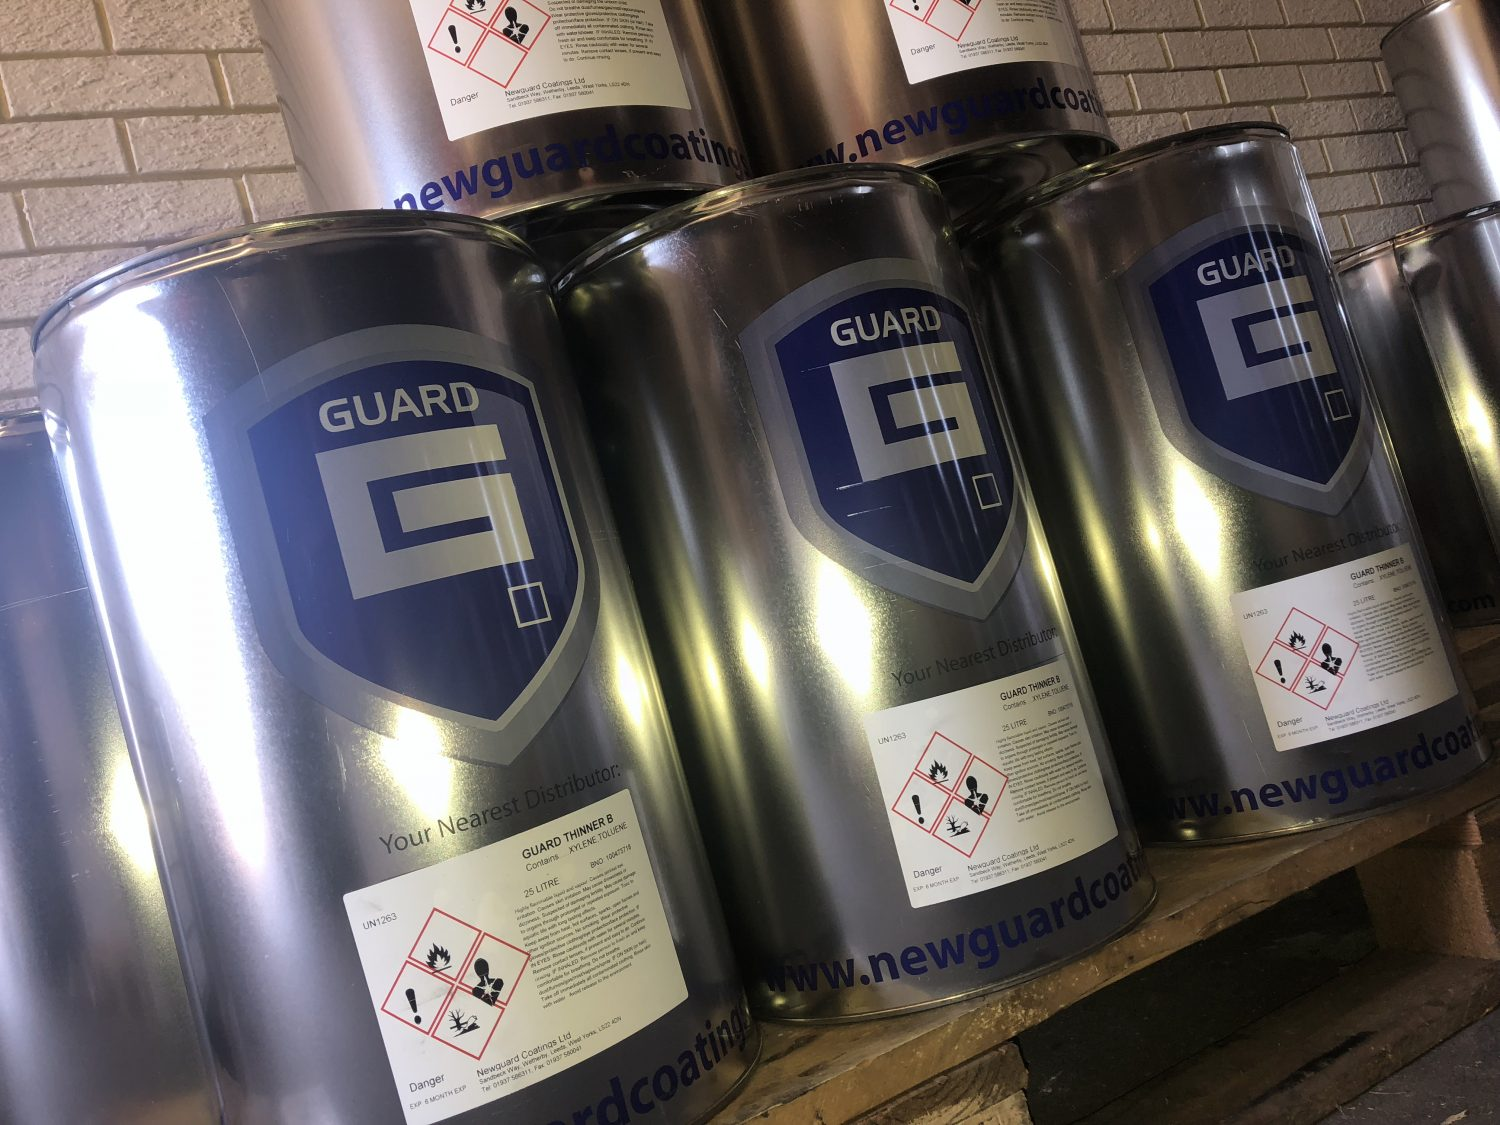 New Guard Solvents Thinners